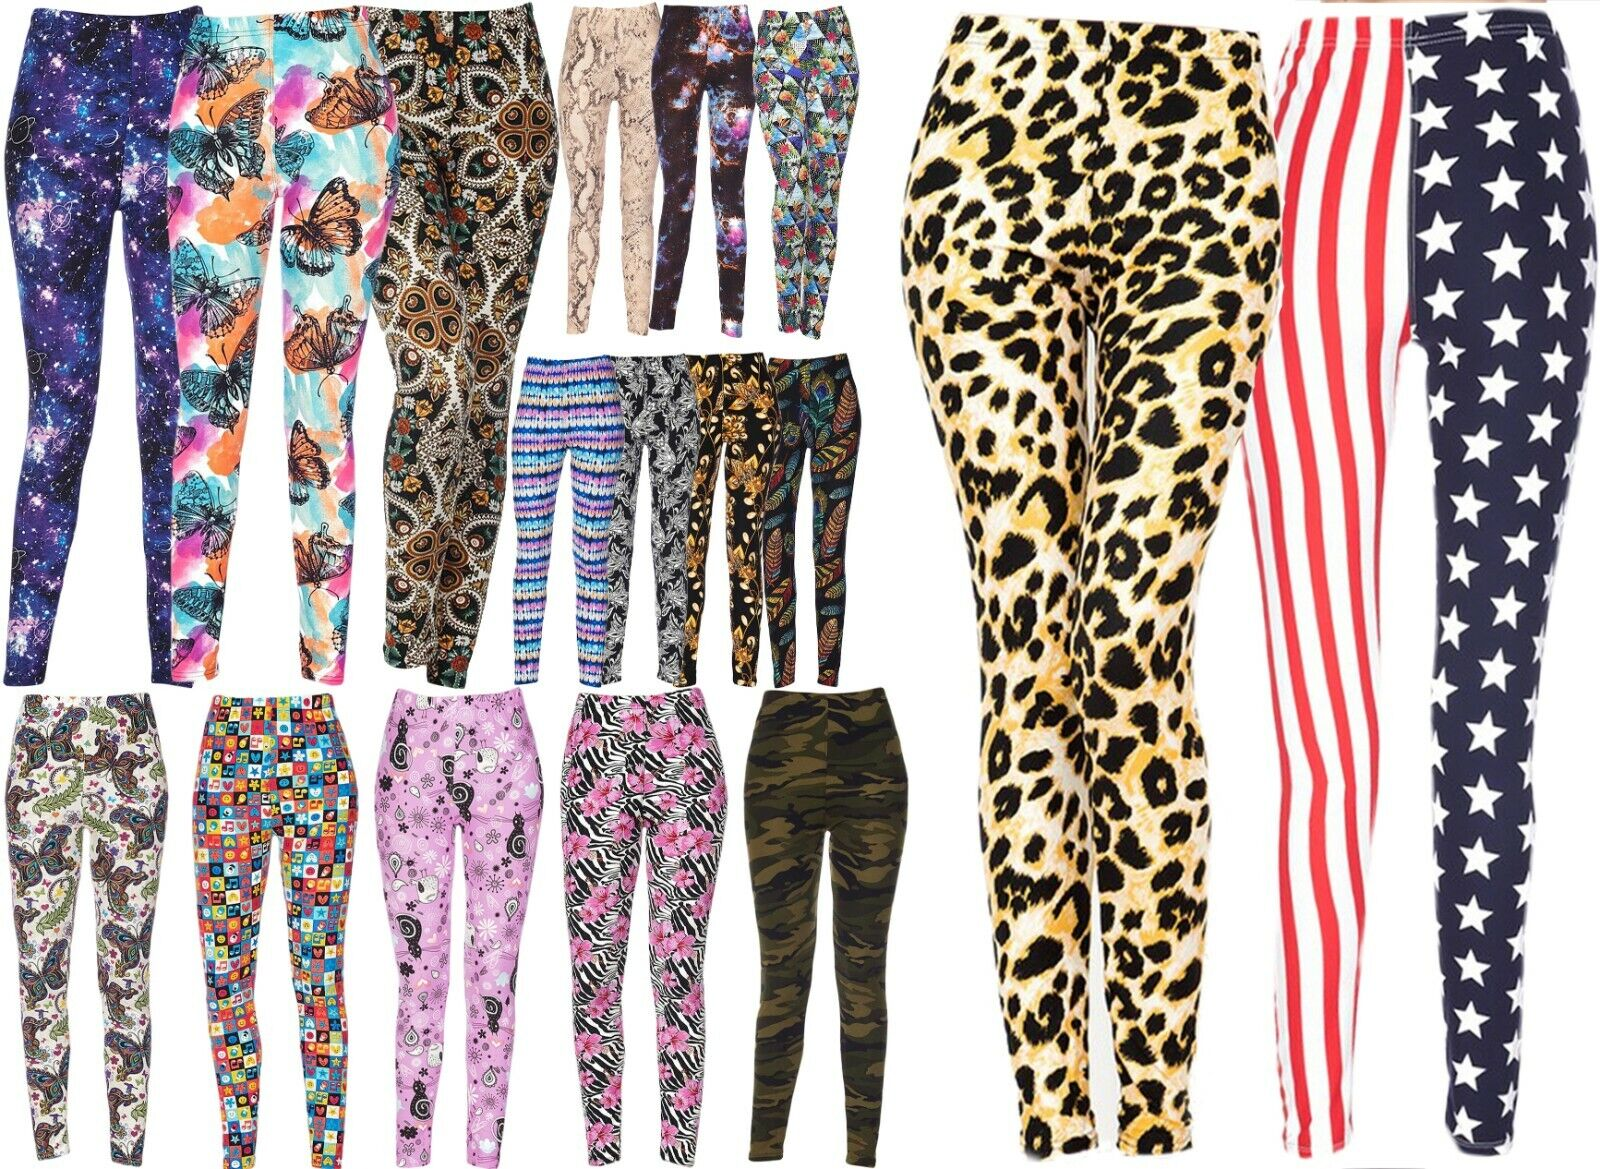 Women's Printed Brushed Buttery Soft Leggings Regular / Plus Size Clothing, Shoes & Accessories